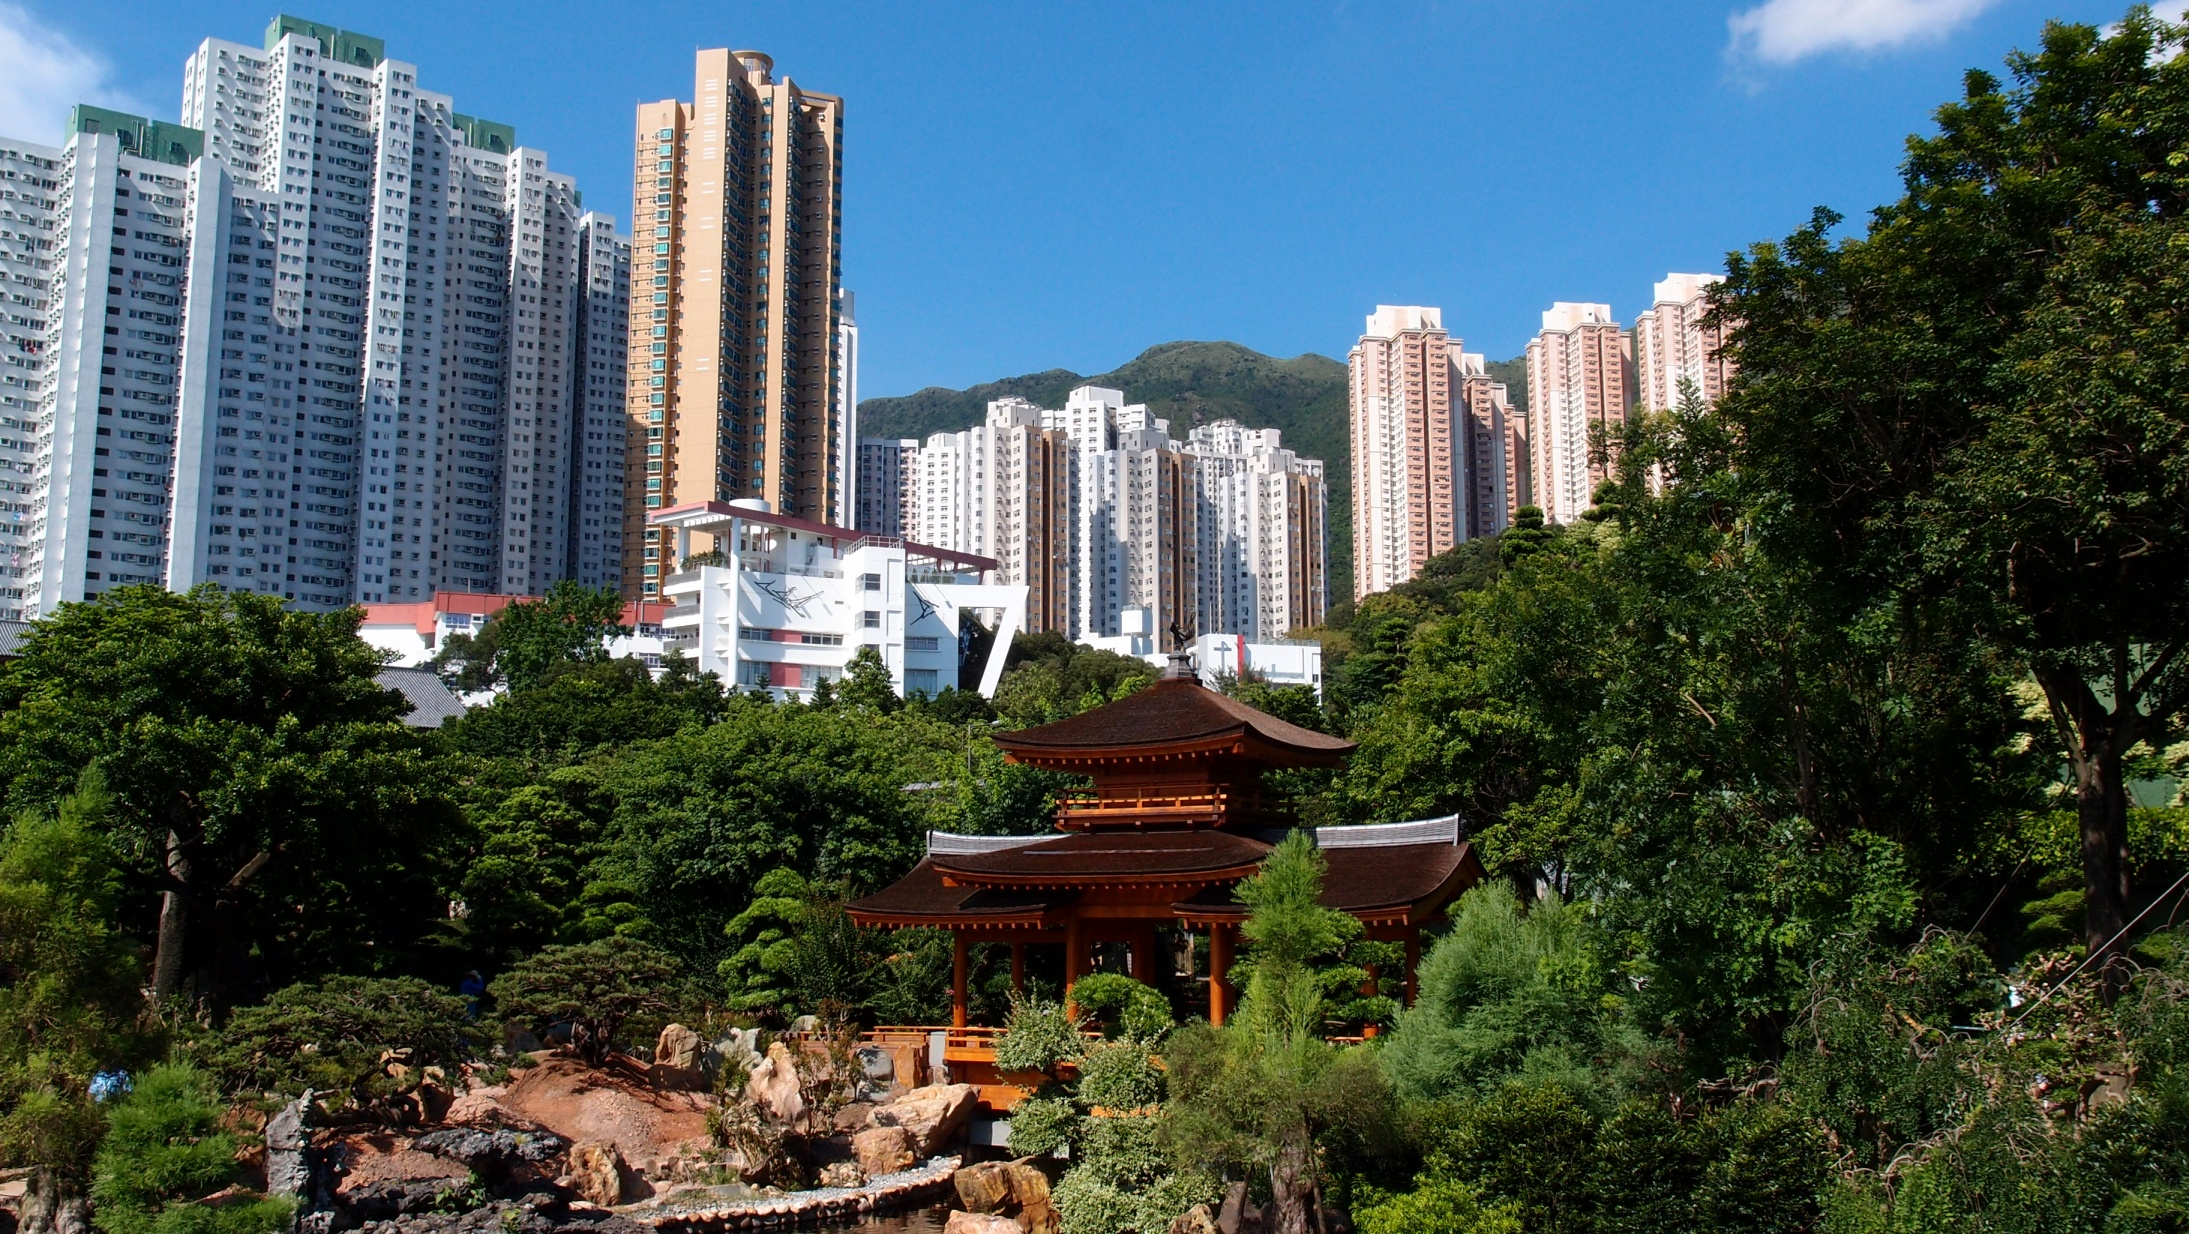 A lovely view from within the Nan Lian Garden